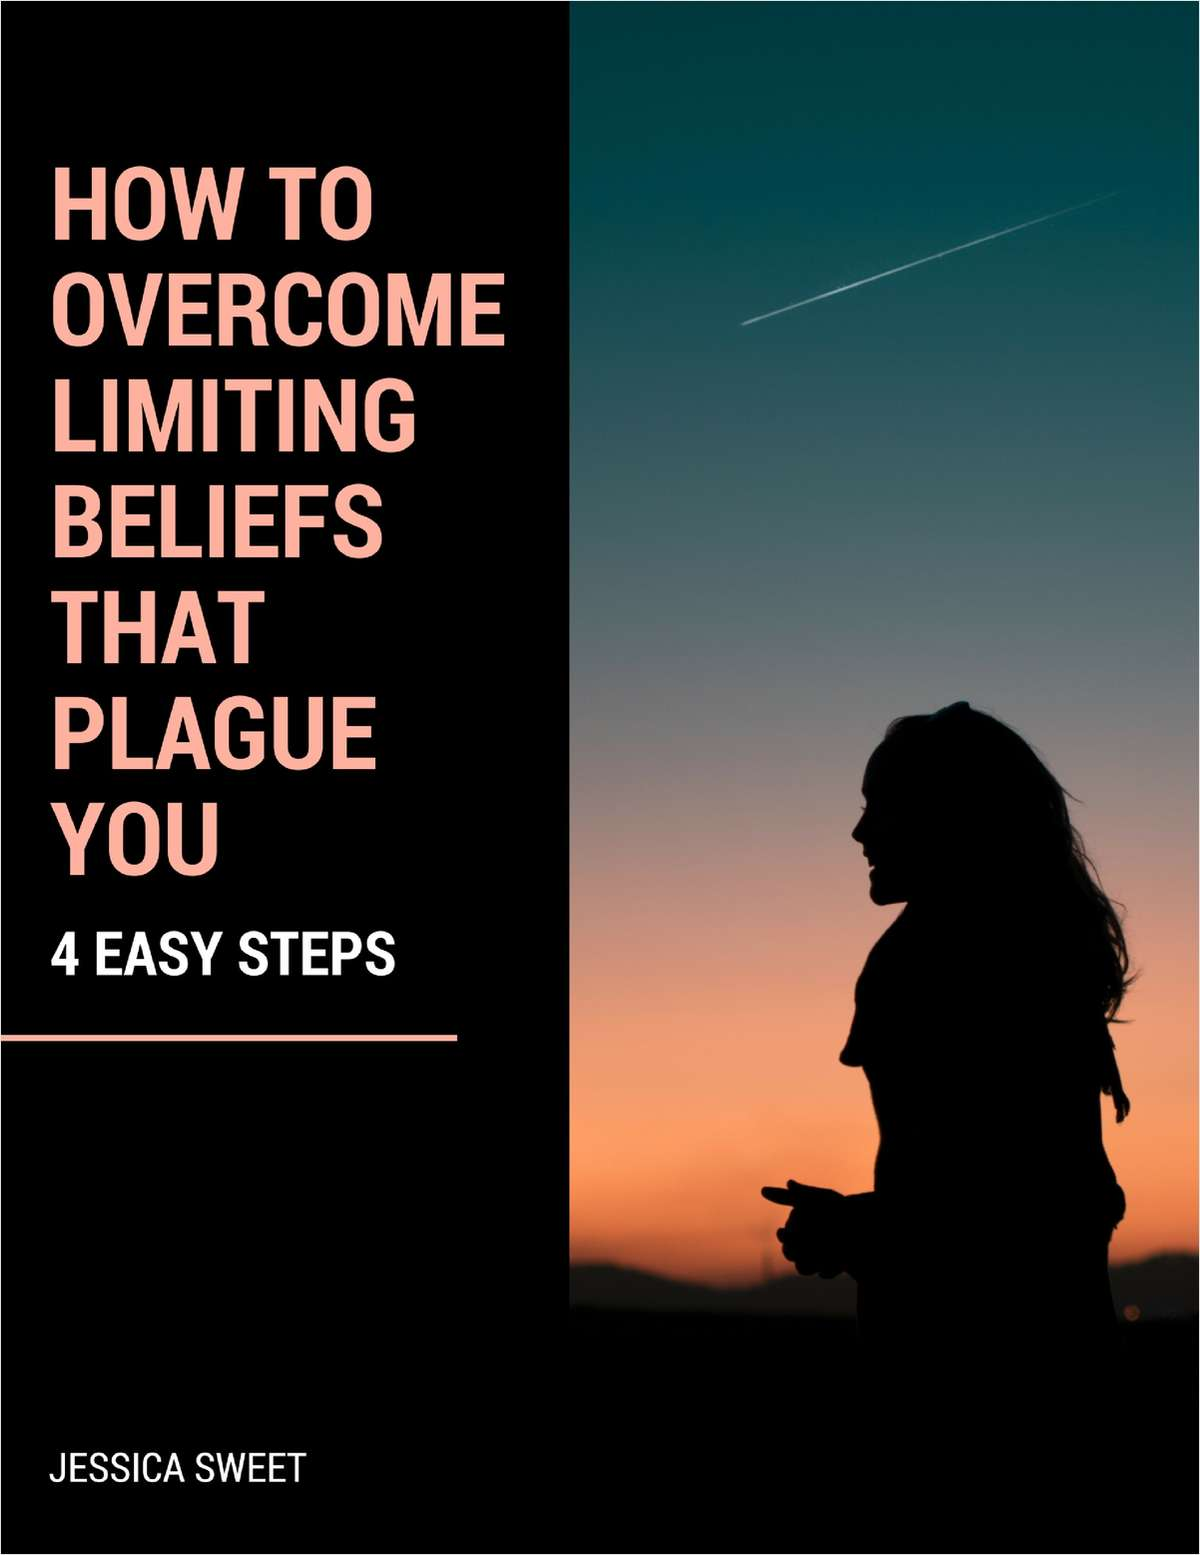 How to Overcome Limiting Beliefs that Plague You - 4 Easy Steps